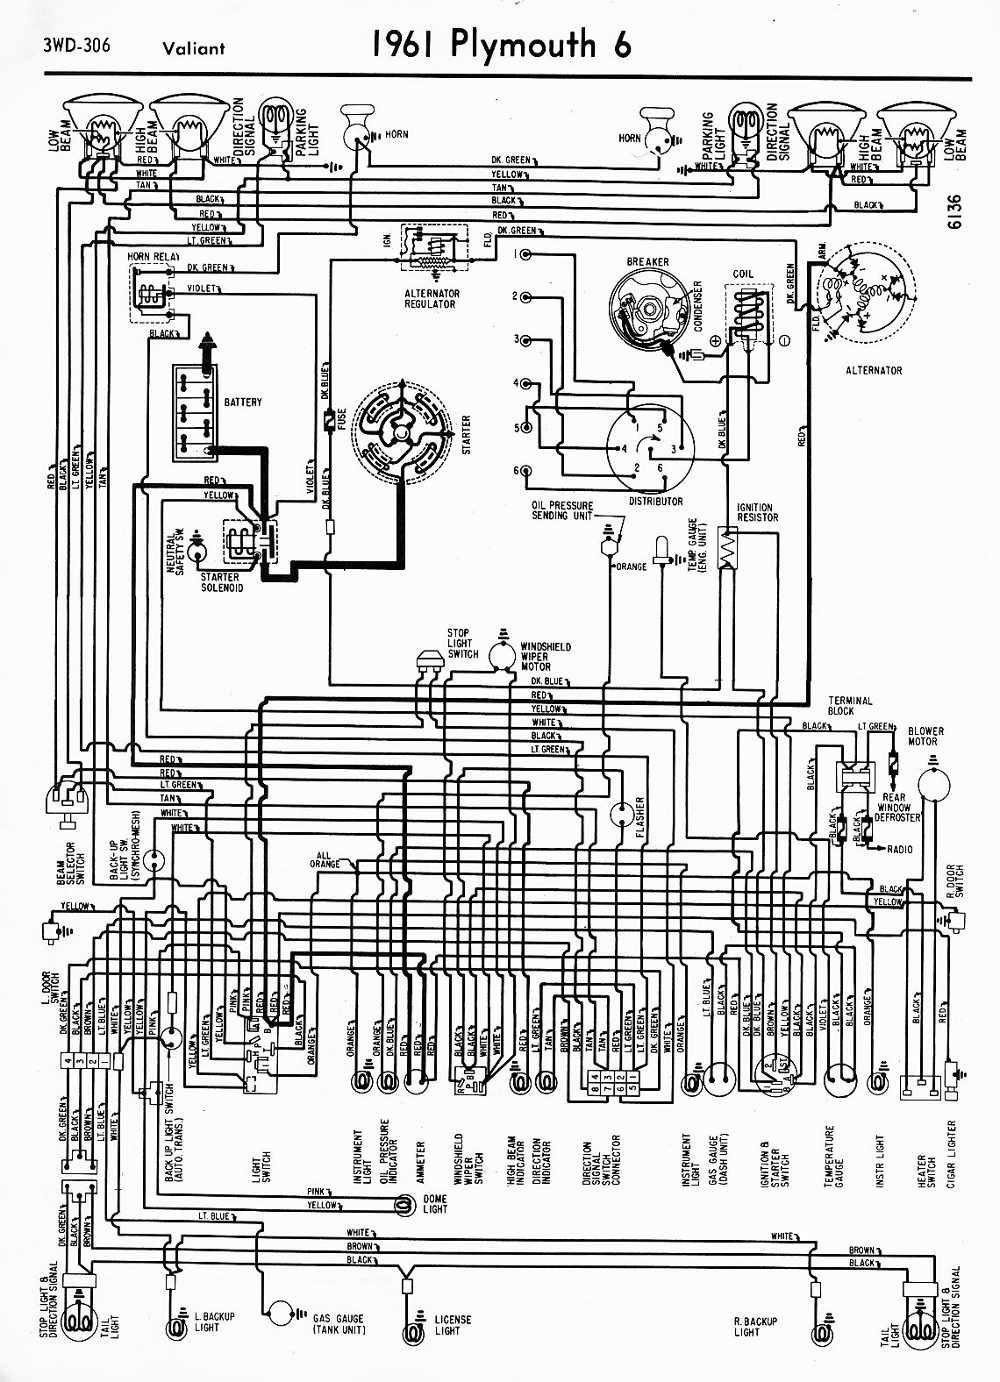 69 Plymouth Road Runner Wiring Diagram | Electronic Schematics ... on pontiac grand prix wiring diagrams, 1968 gto wiring diagram, 1969 pontiac firebird wiring diagram,